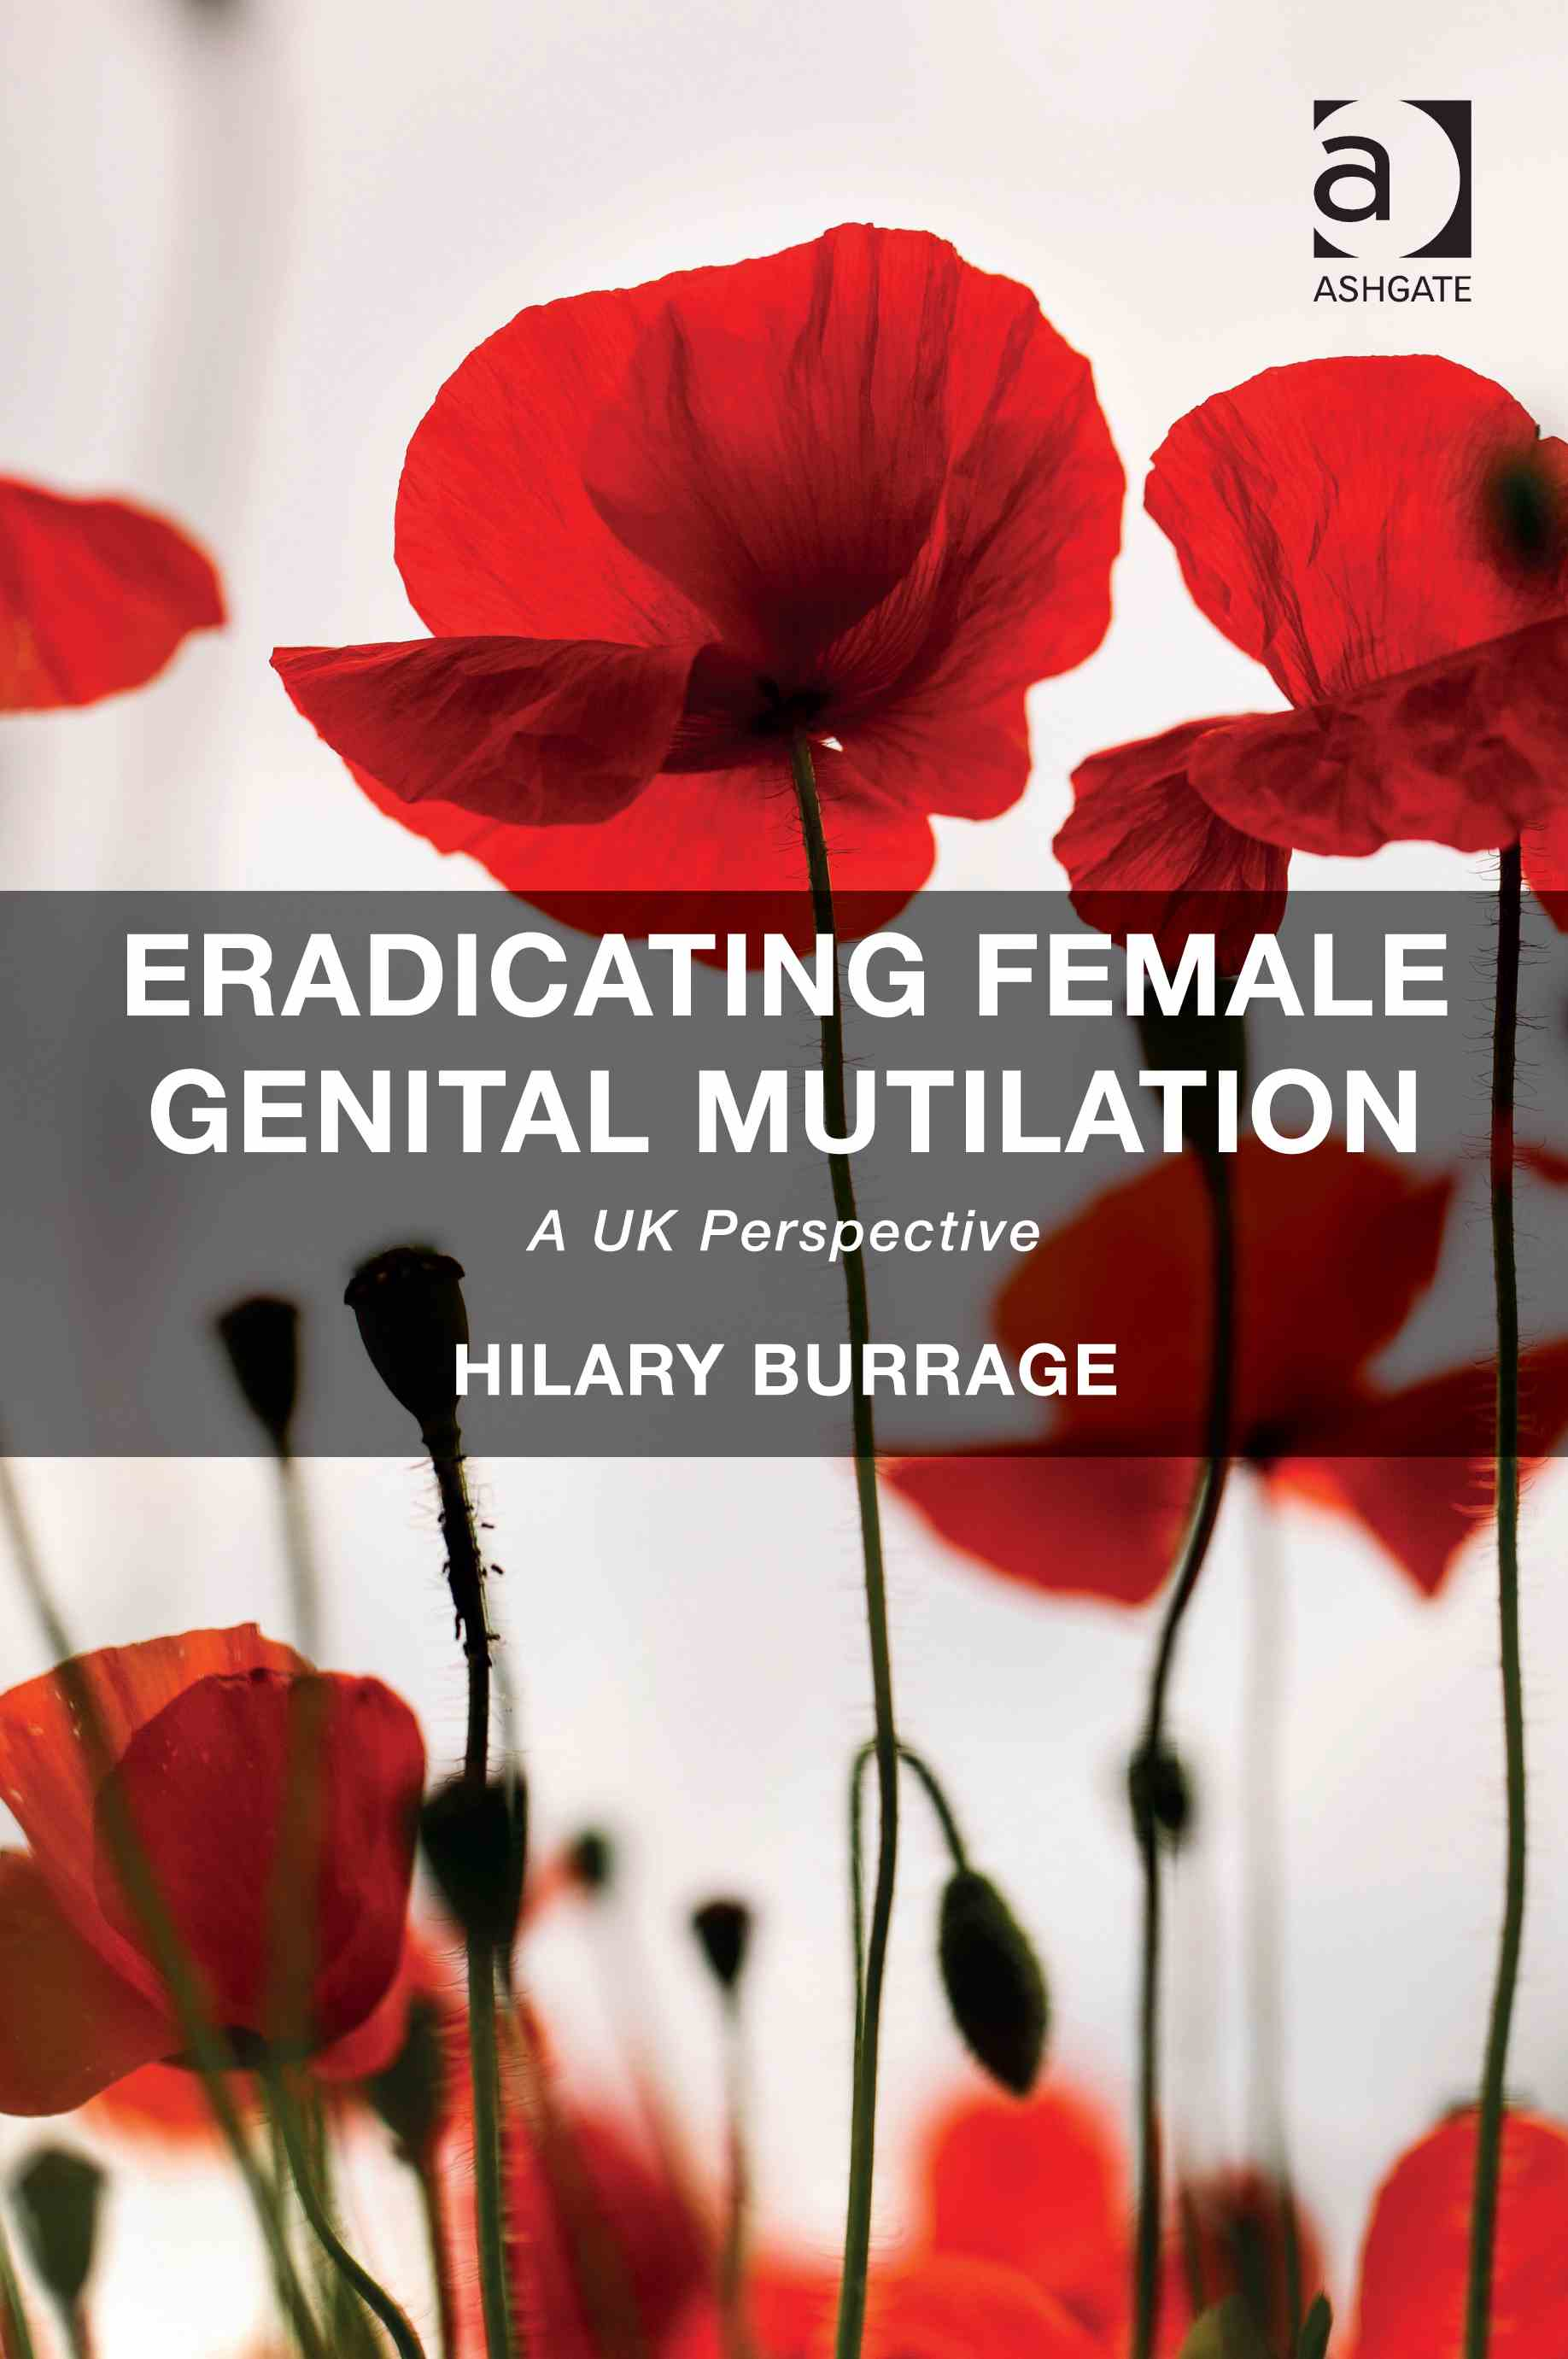 what is female genital mutilation an introduction to the issues 15 07 14 fgm book1 jacket jpeg